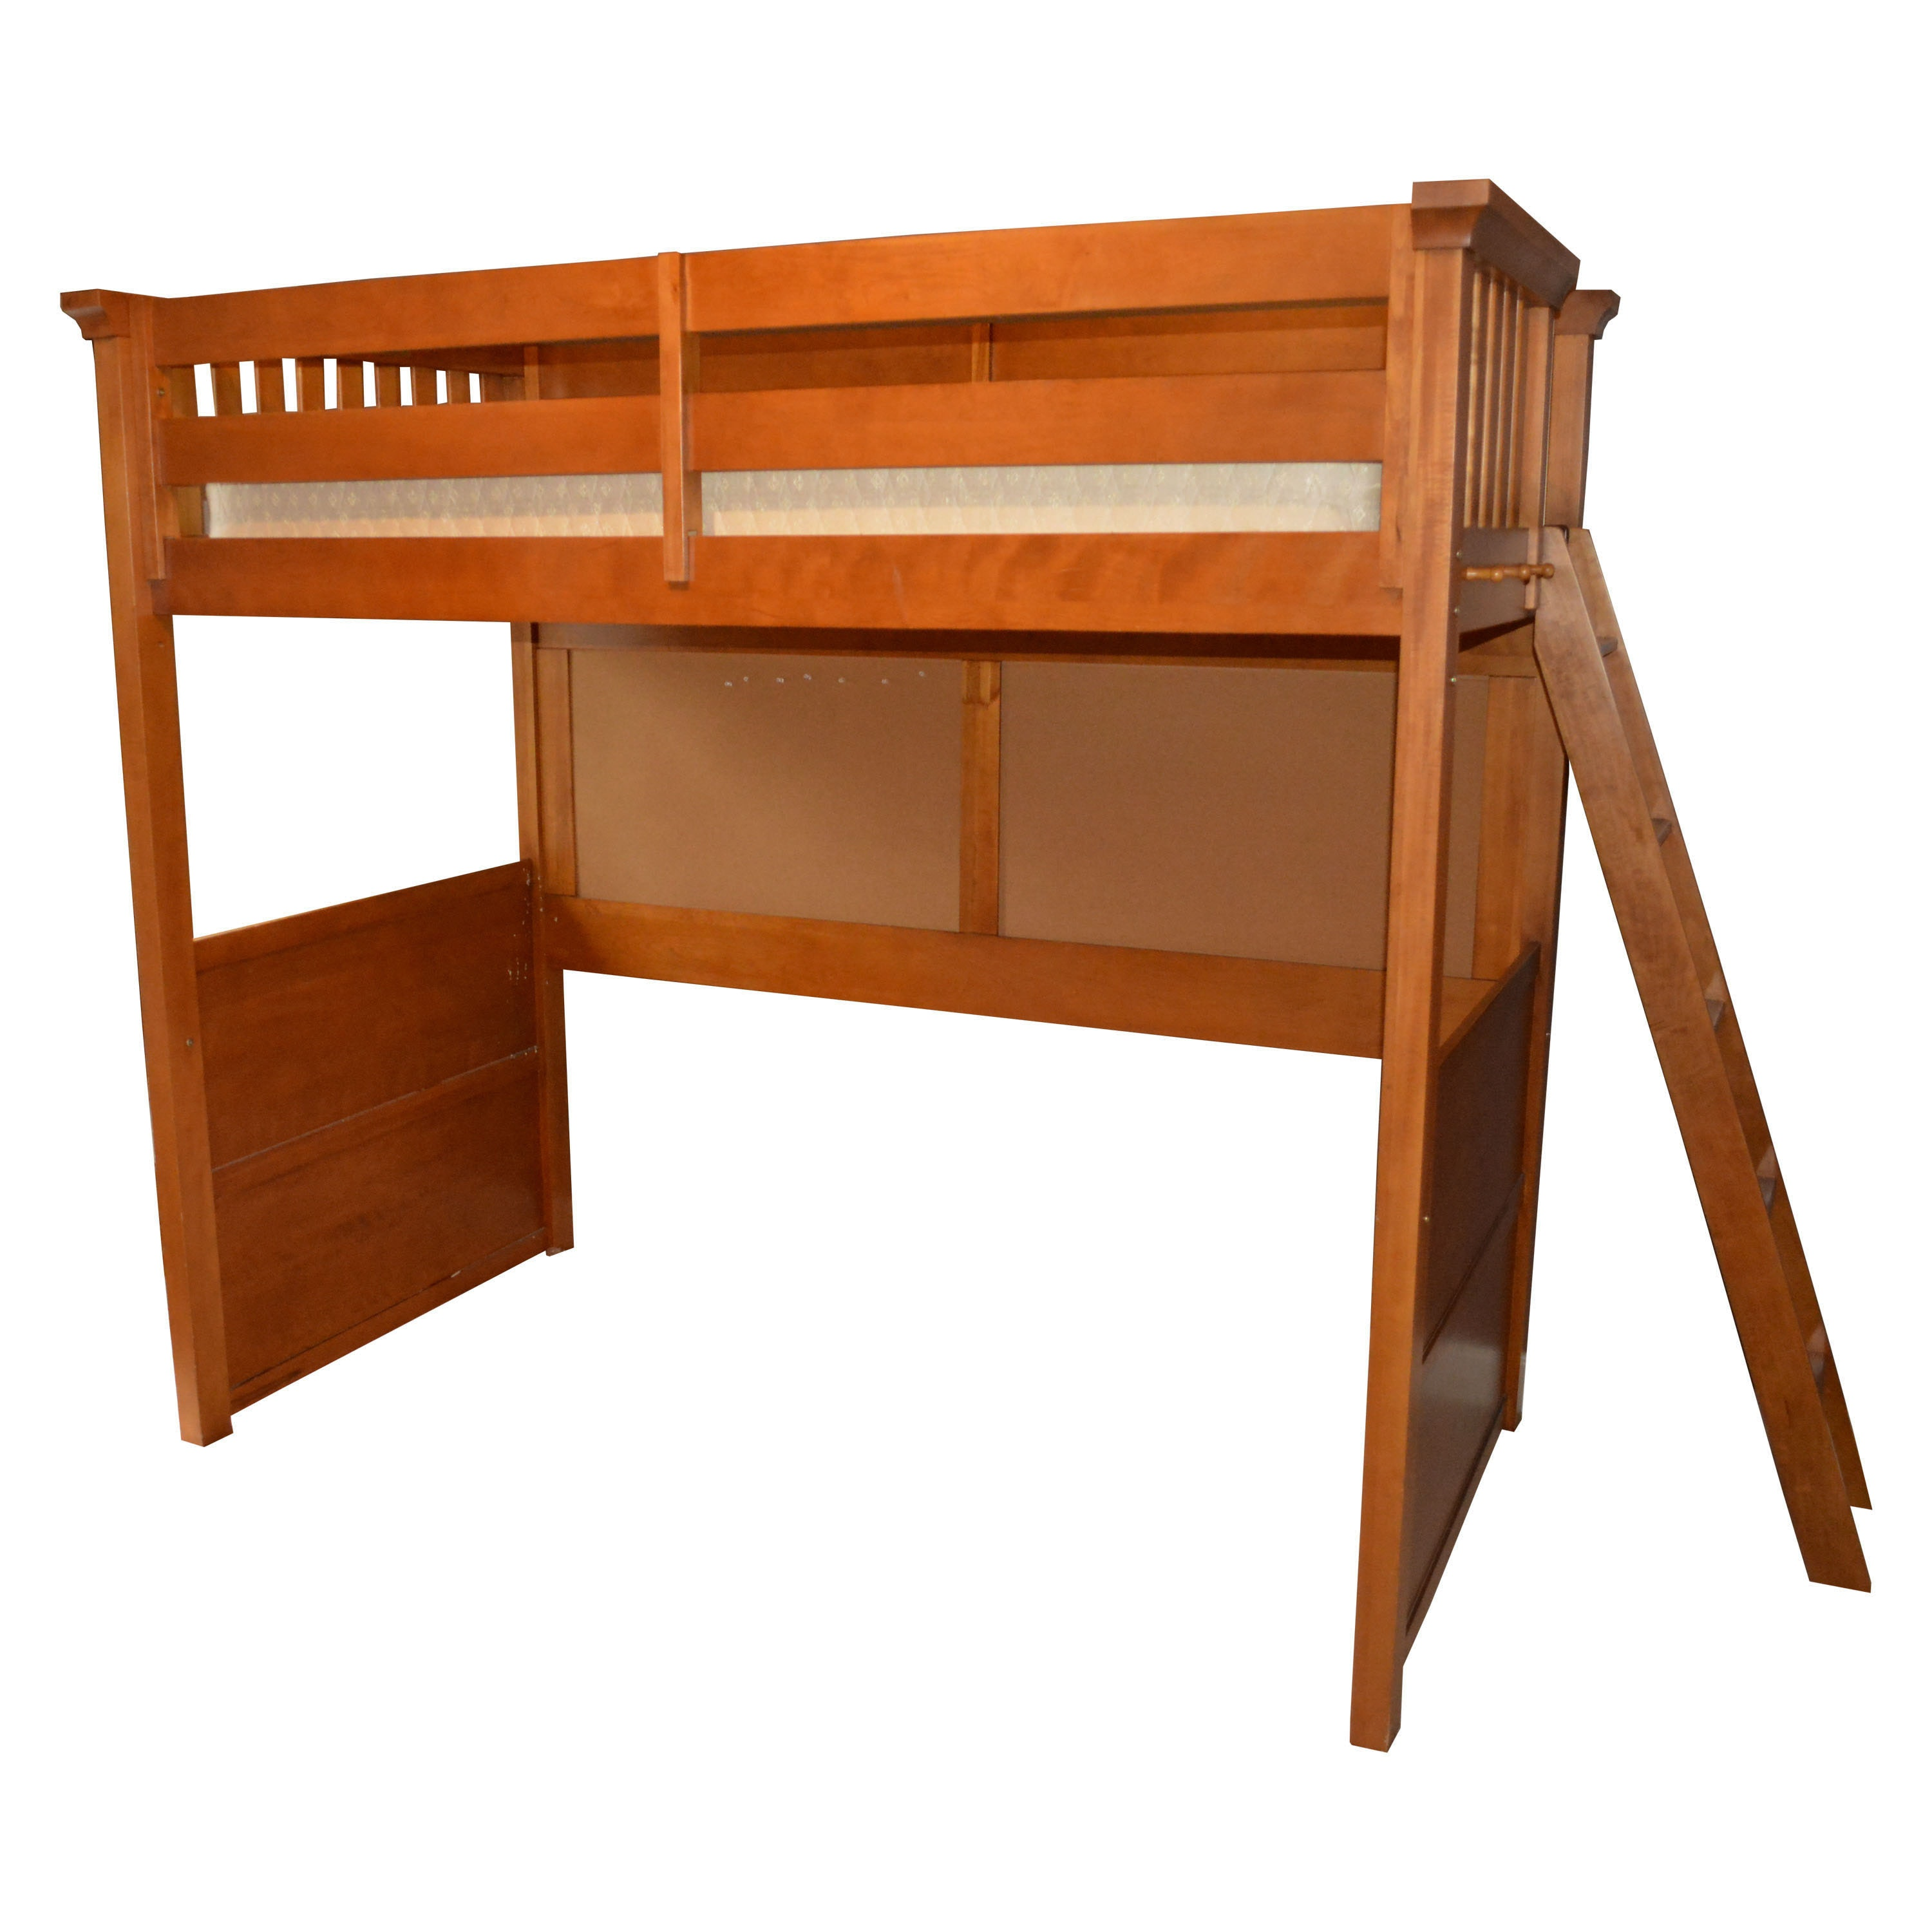 Charmant Lea Industries Wooden Twin Size Loft Bed With Mattress And Ladder ...